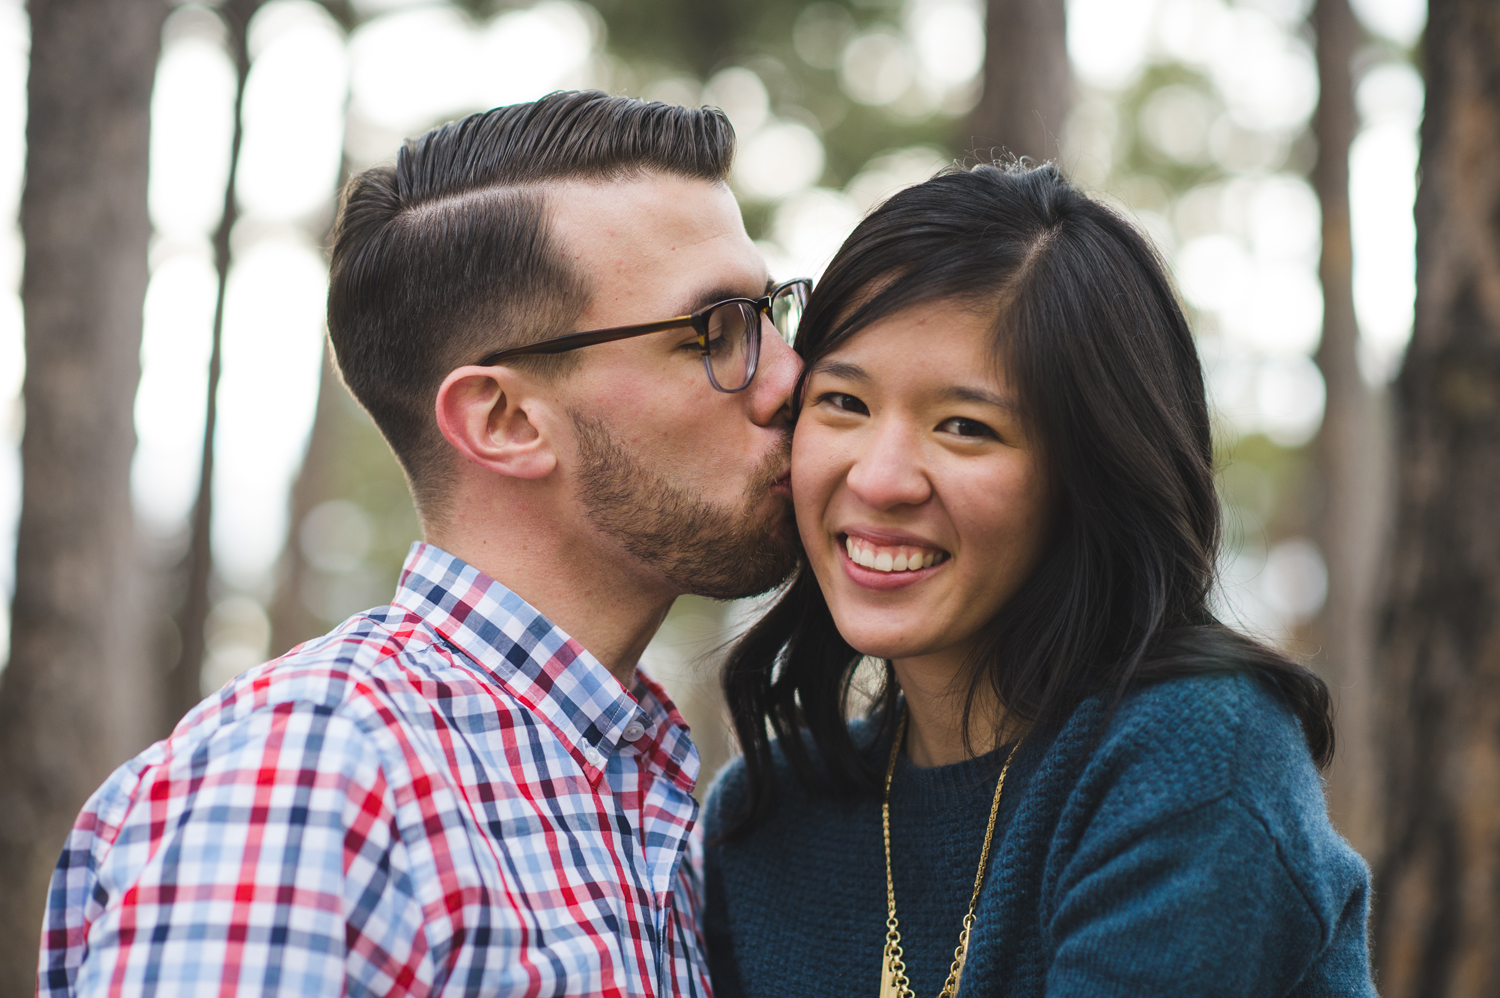 TiffanyandMark_Engaged_0559_squarespace.jpg